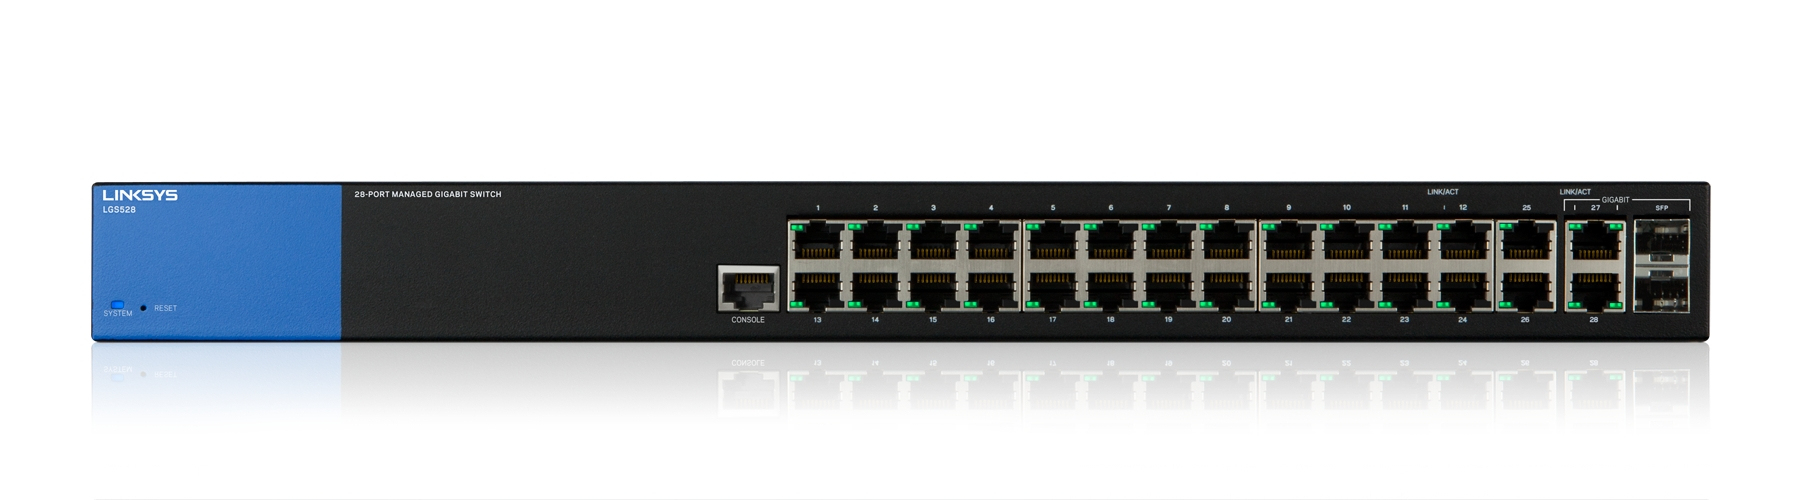 LINKSYS 28-PORT MANAGED GIGABIT SWITCH (LGS528)